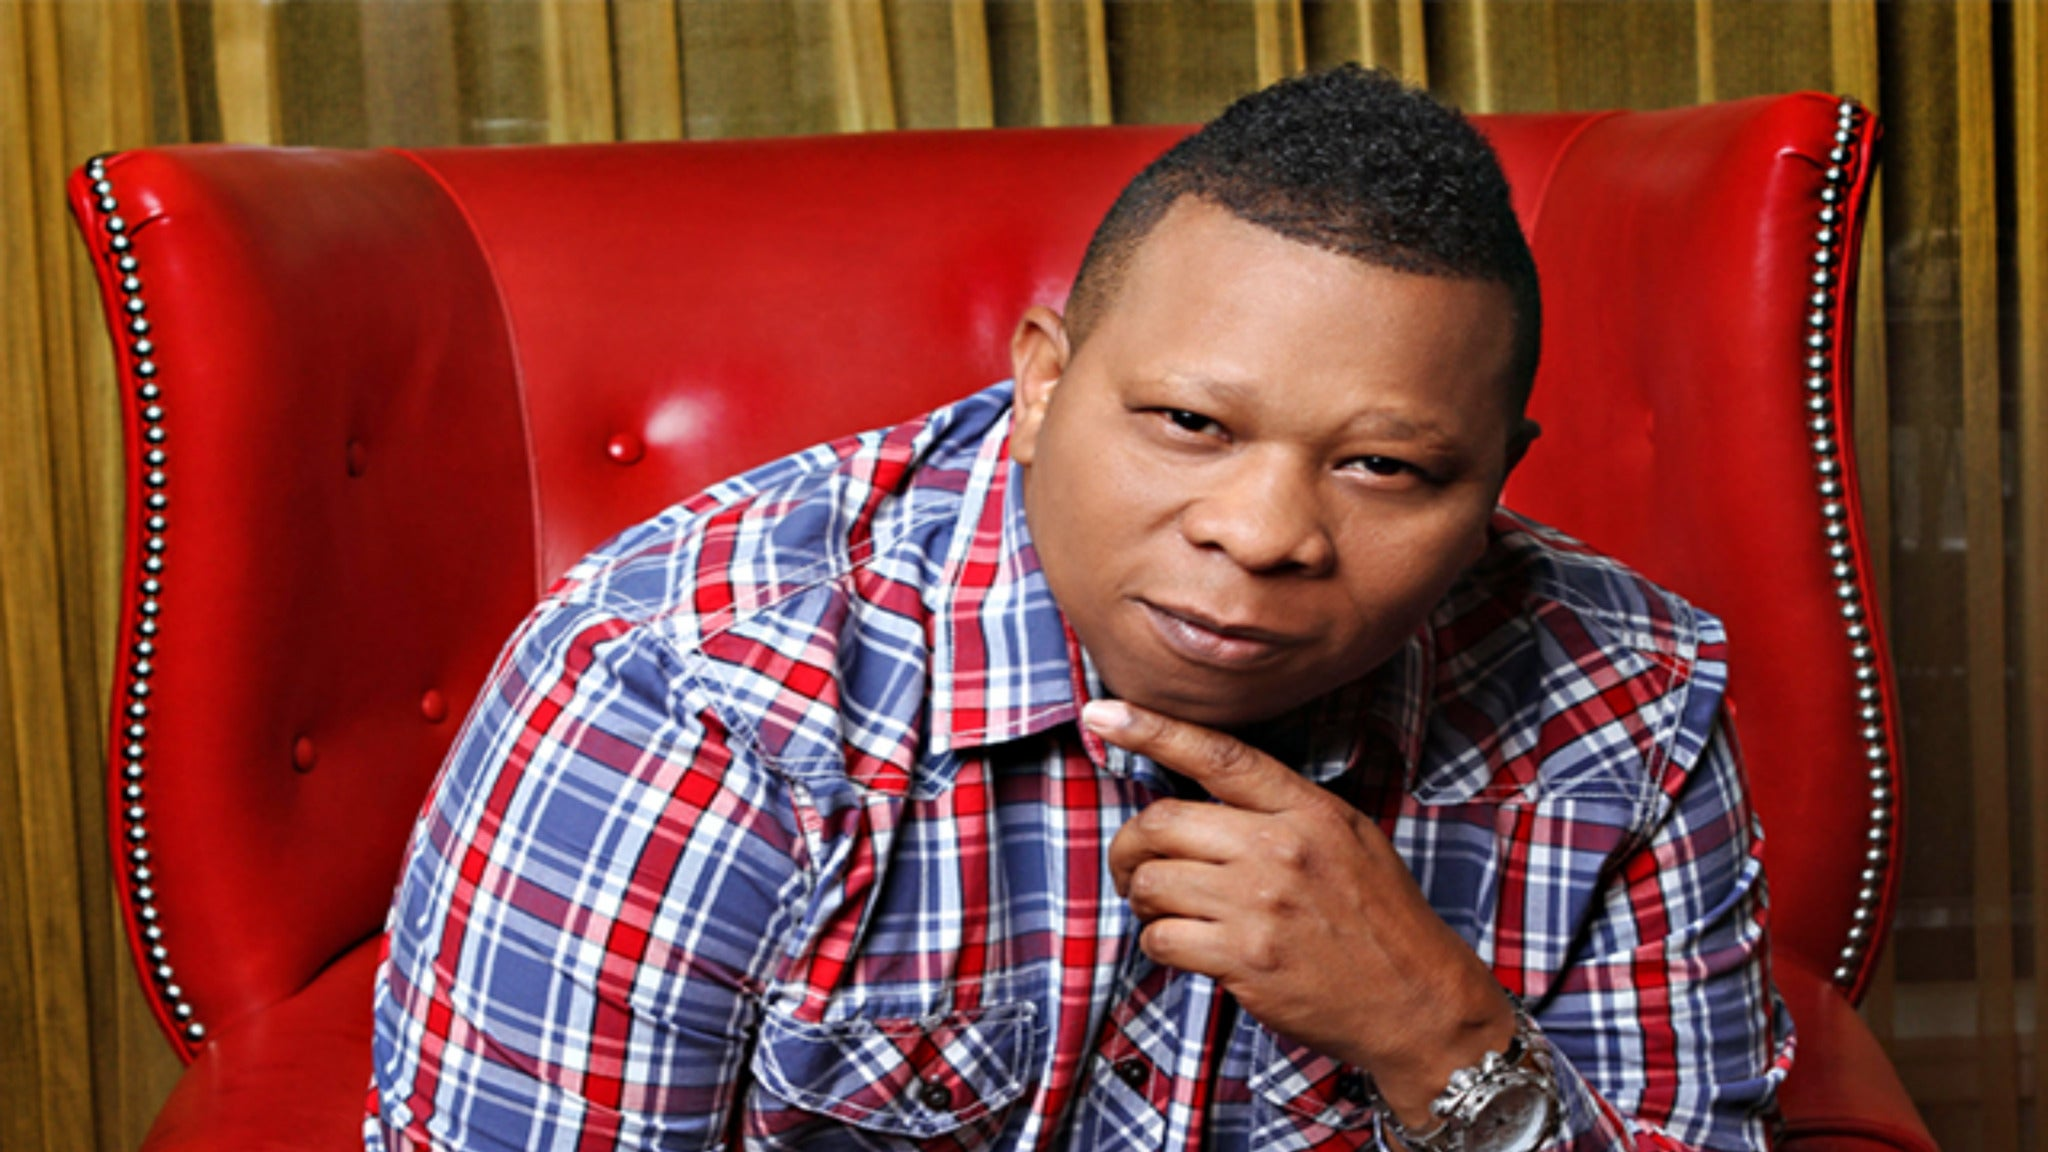 Damn That DJ Made My Day Party by Mannie Fresh